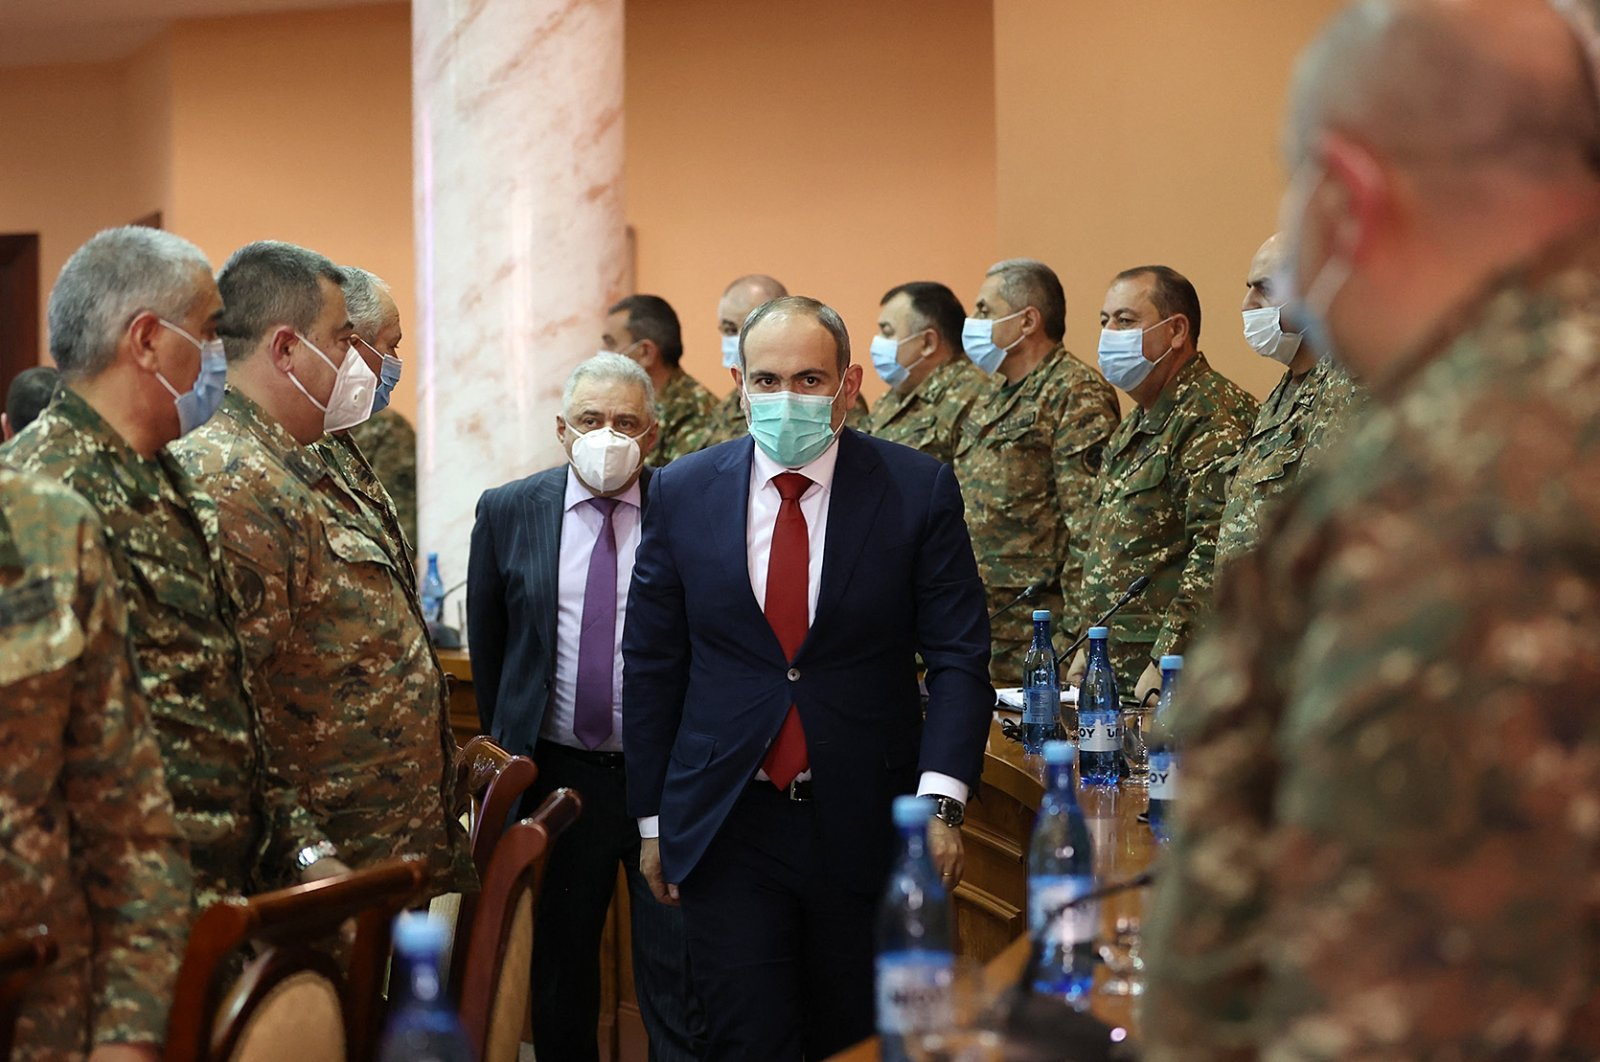 Armenian Prime Minister Nikol Pashinyan meets with top military officers in Yerevan, Armenia, March 10, 2021. ( Armenian Government via AFP)